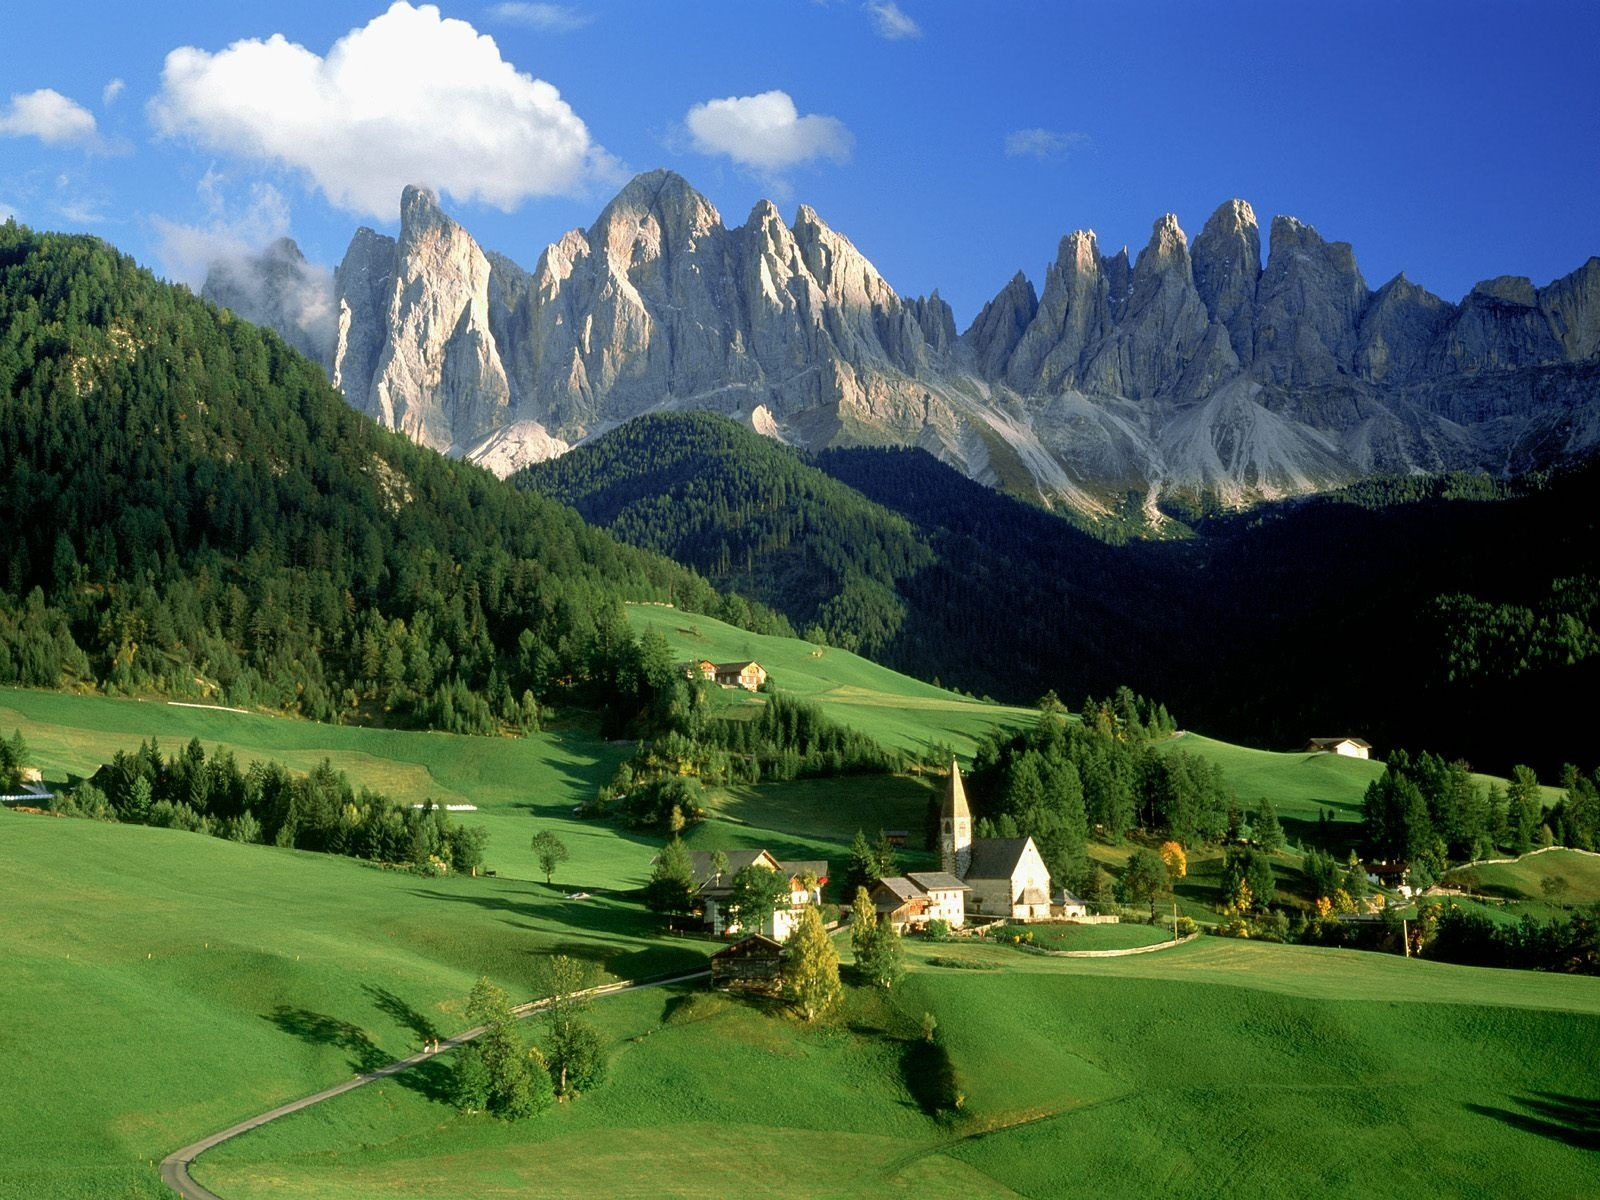 Pics of places that look like places from the films, or are just nice. [2] - Page 4 Trentino-alto-adige_e1jge.T0